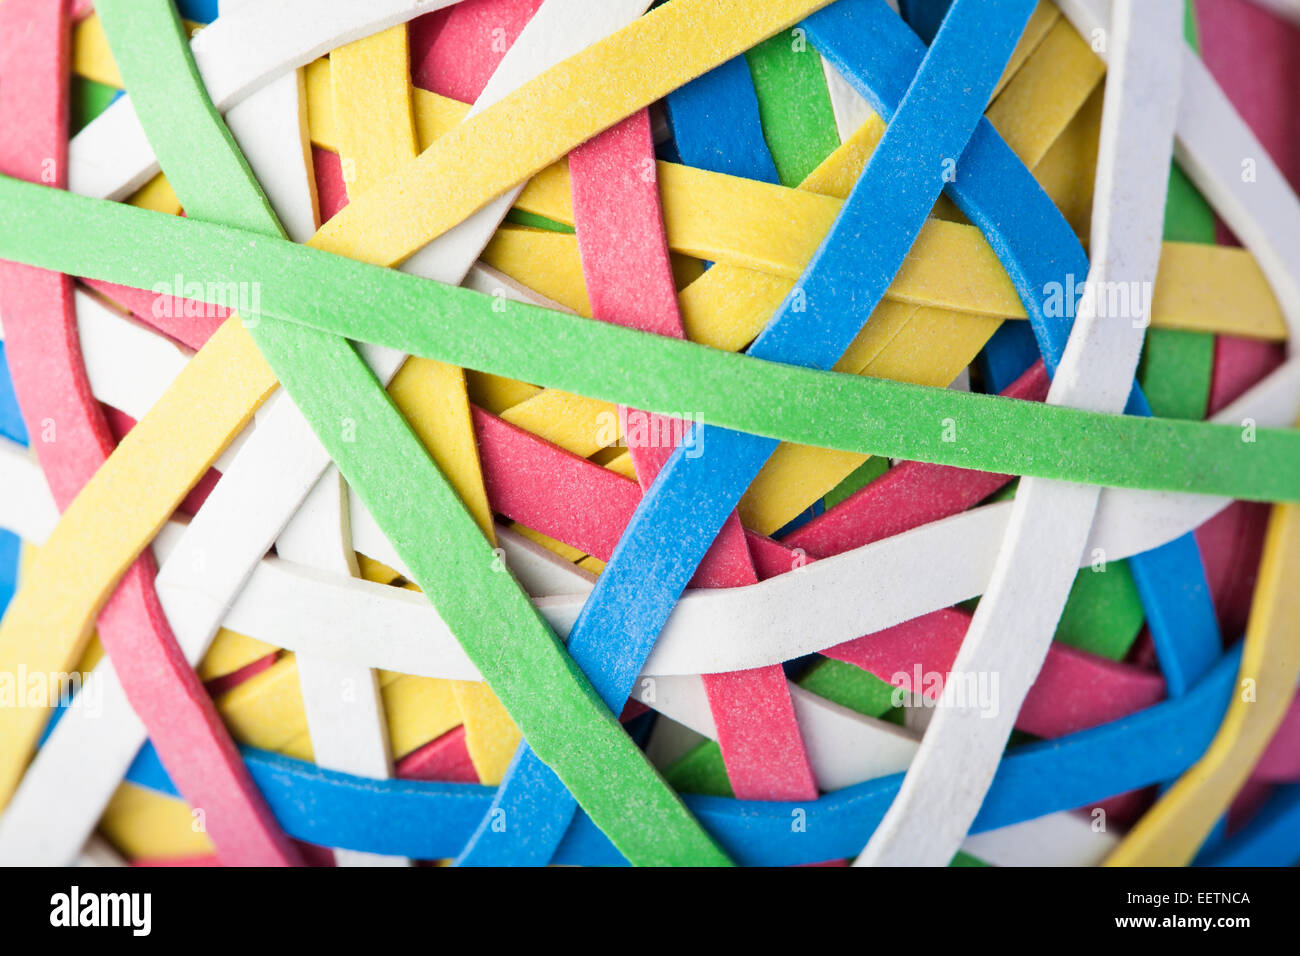 Close Up Of Rubber Band Ball - Stock Image